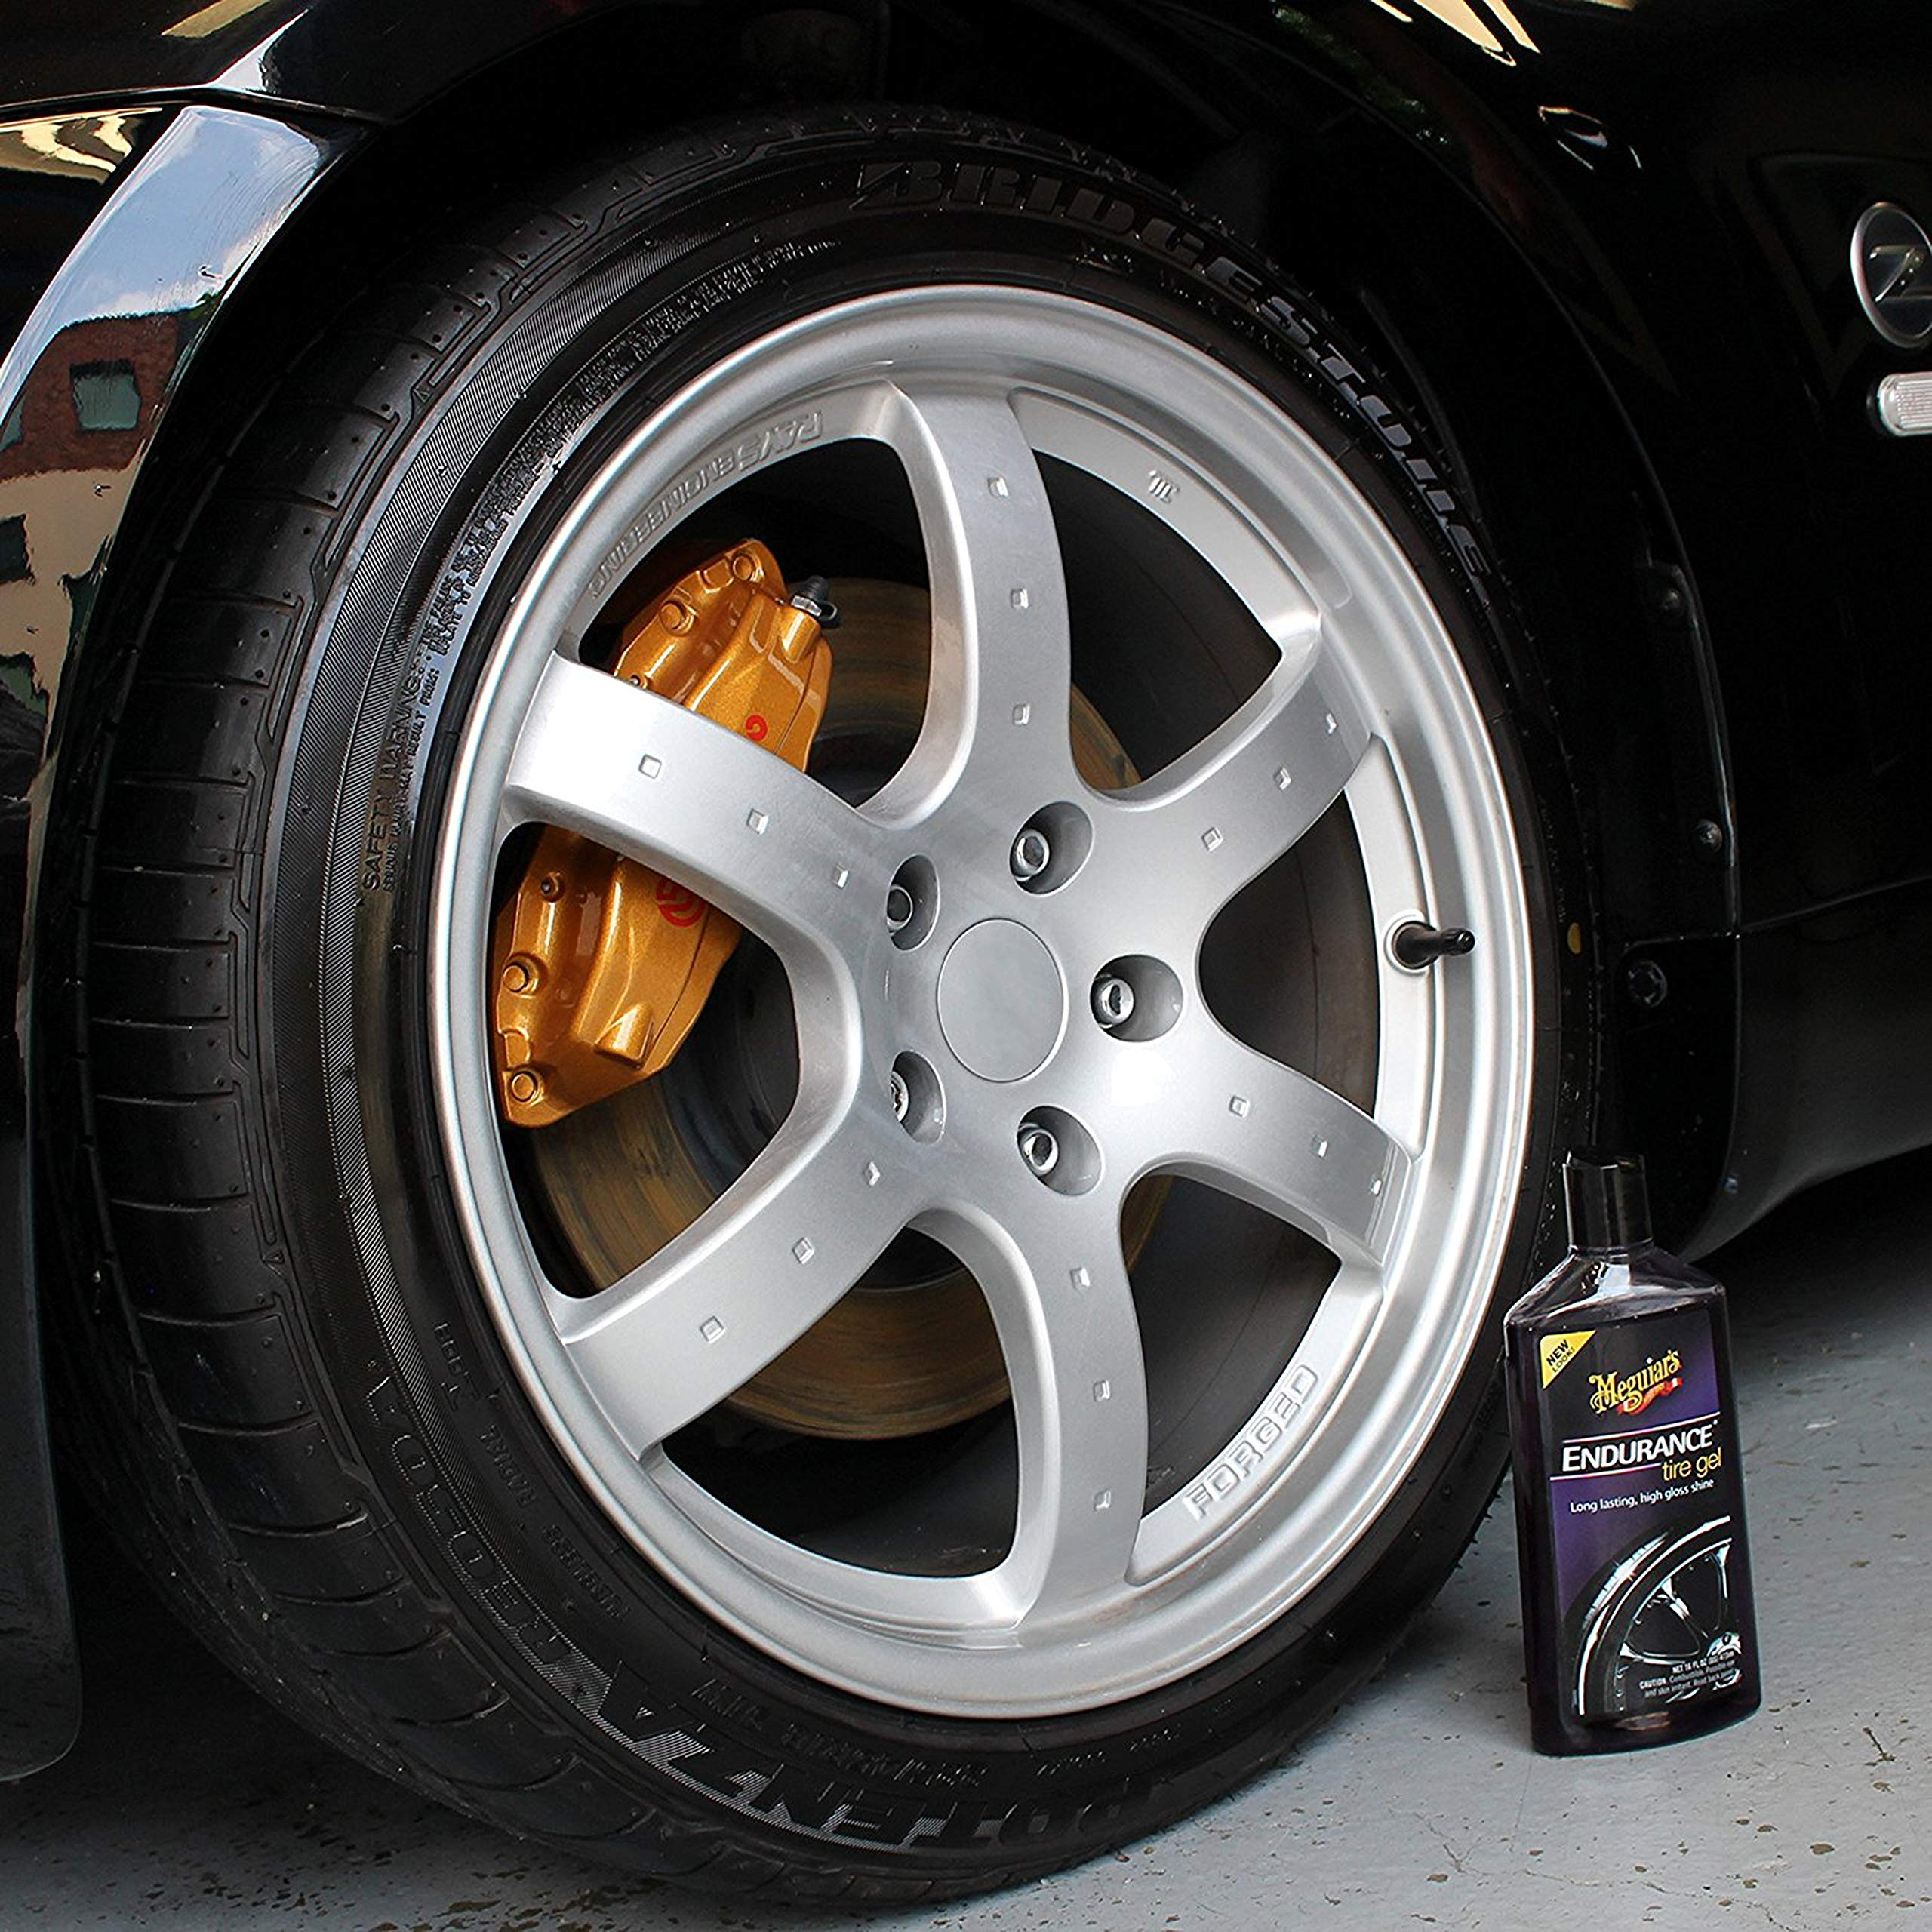 MEGUIAR'S G55032SP Complete Car Care Kit by MEGUIAR'S (Image #4)